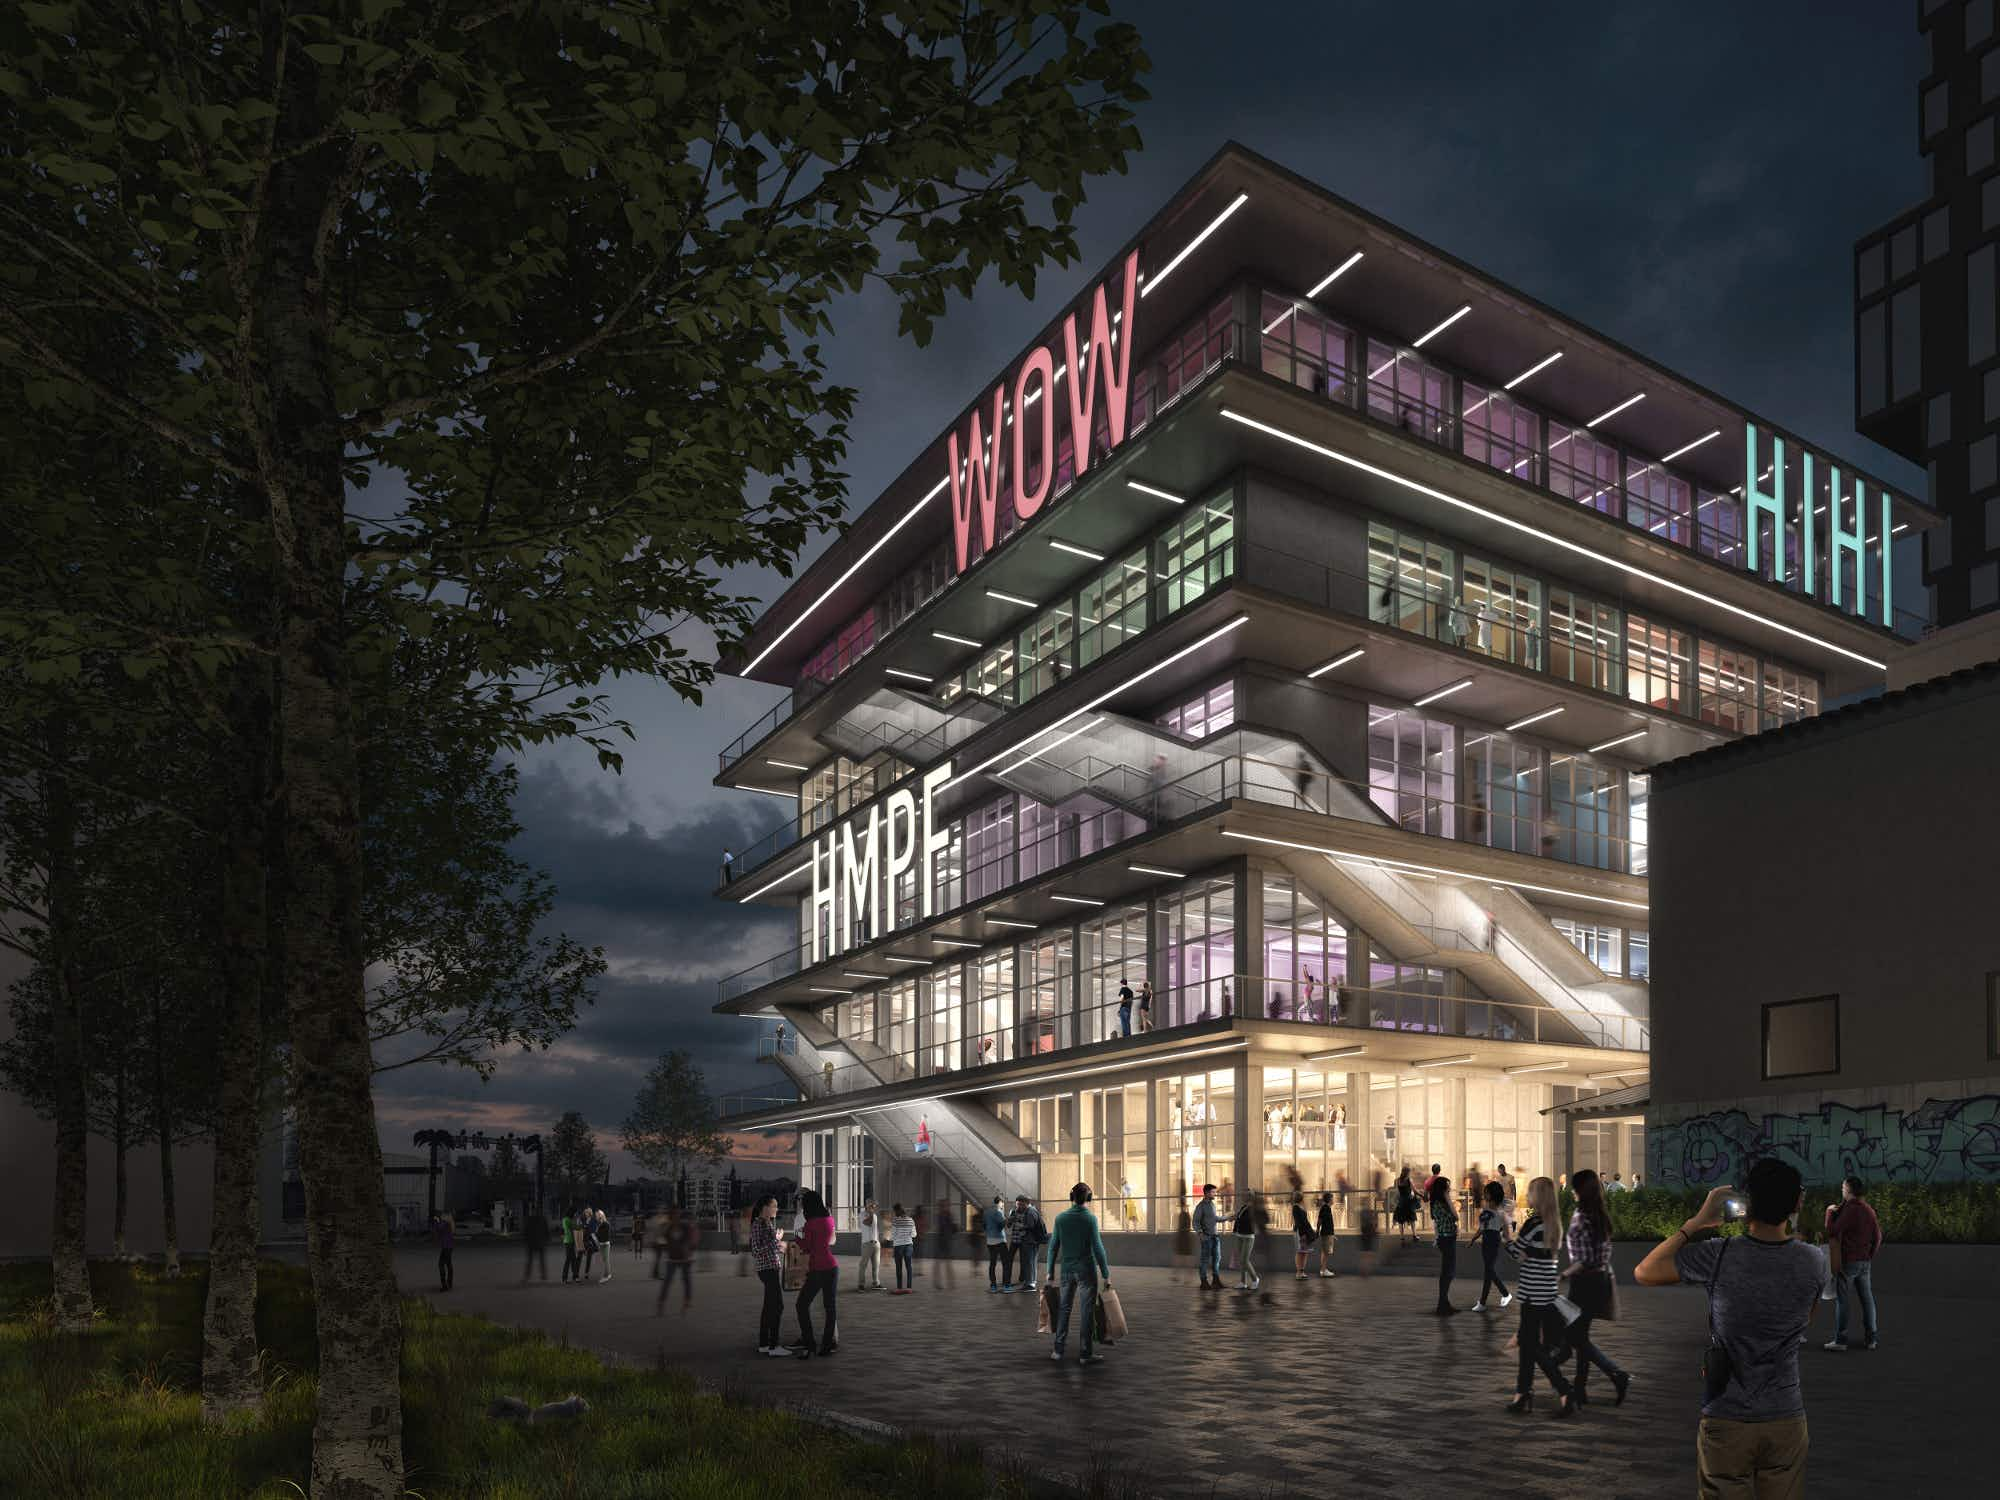 Munich's trendy new development will have 'exclamations' on the front of the building